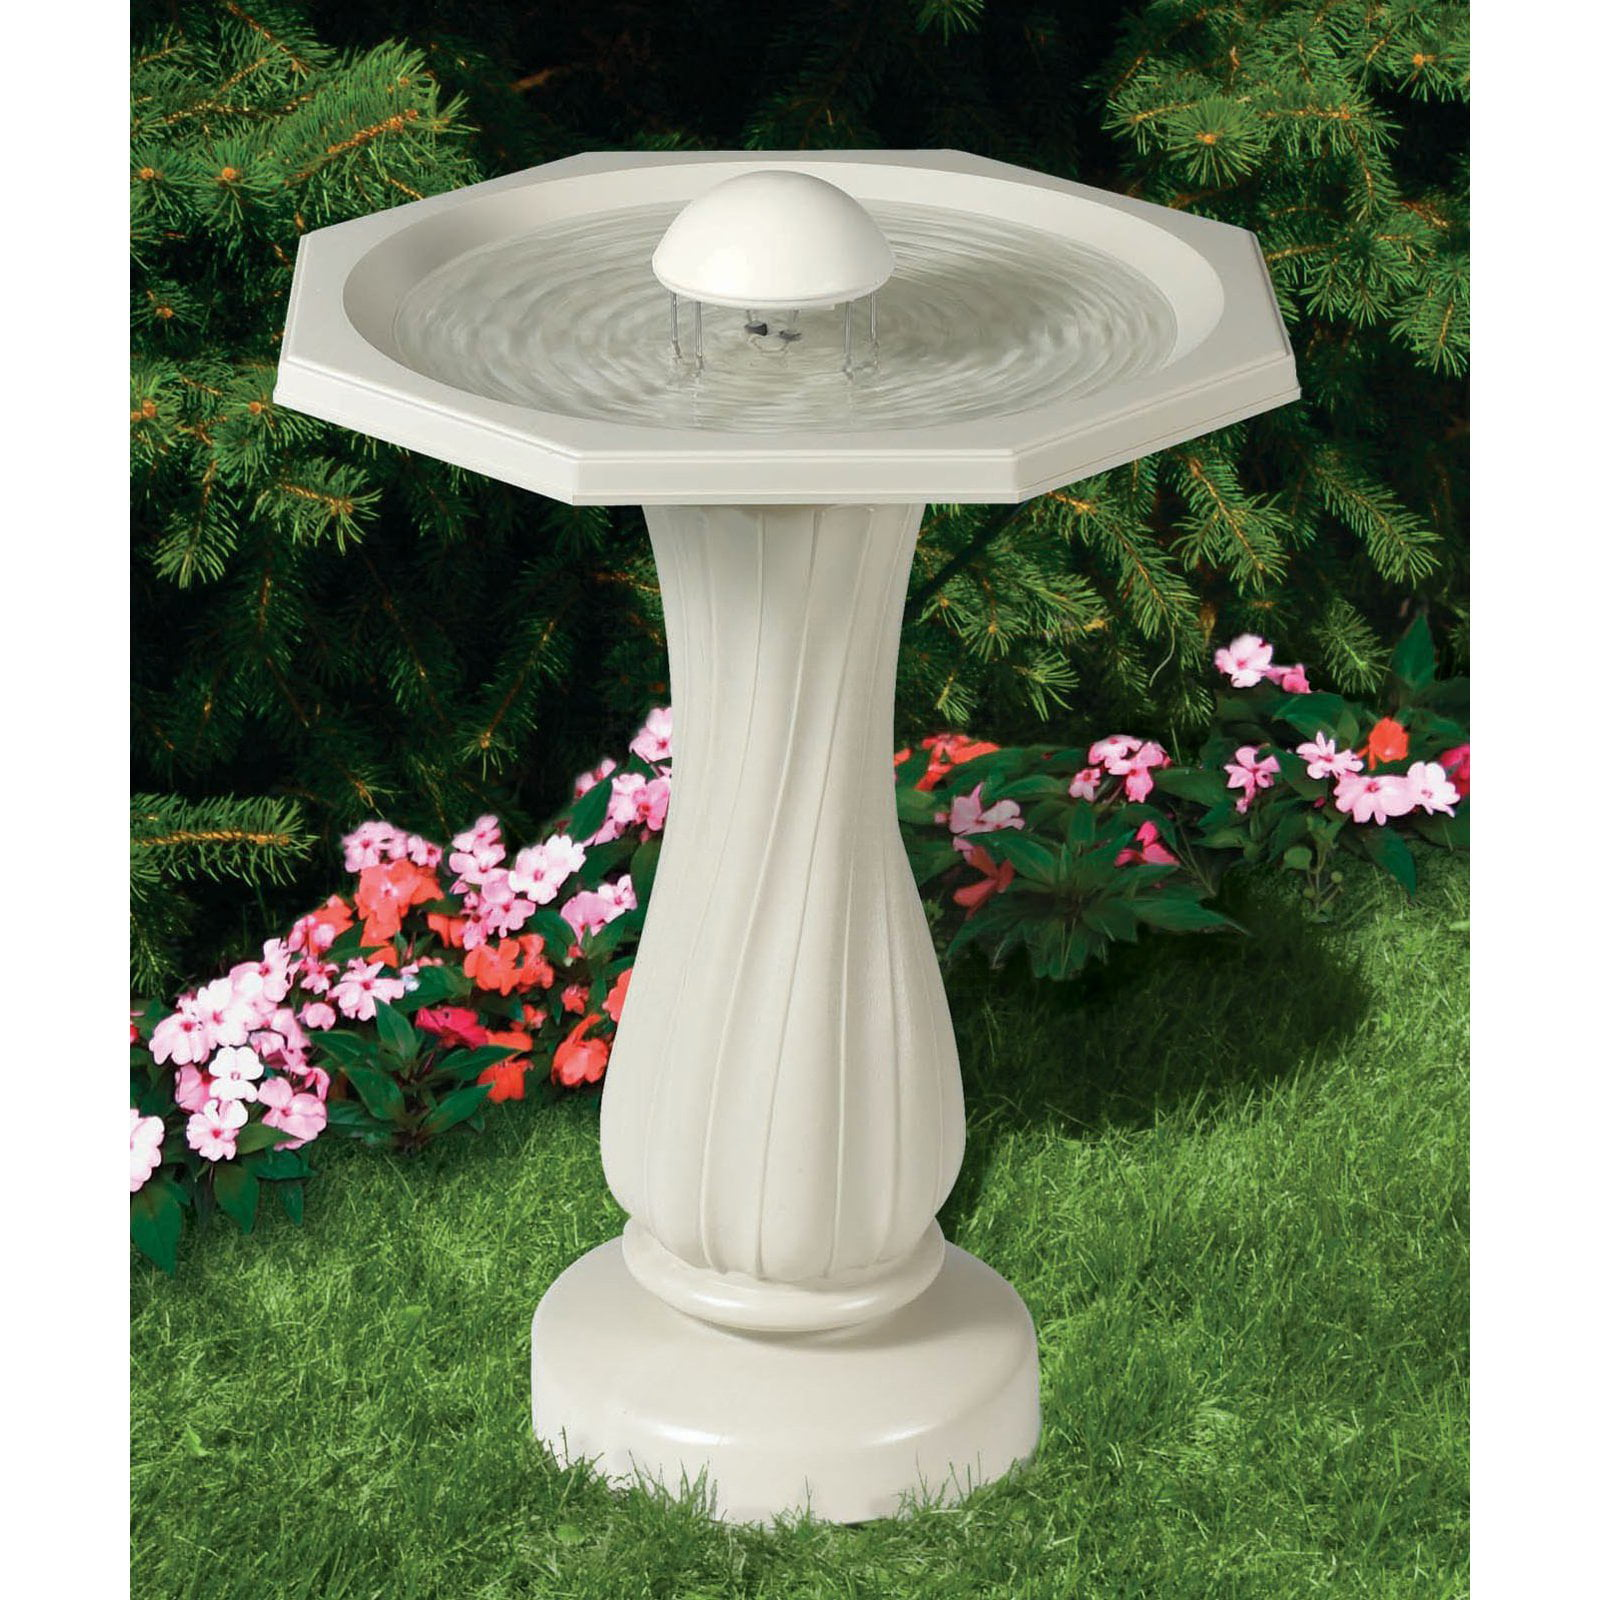 Allied Precision Water Rippling Birdbath 390 by Gold Crest Distributing LLC